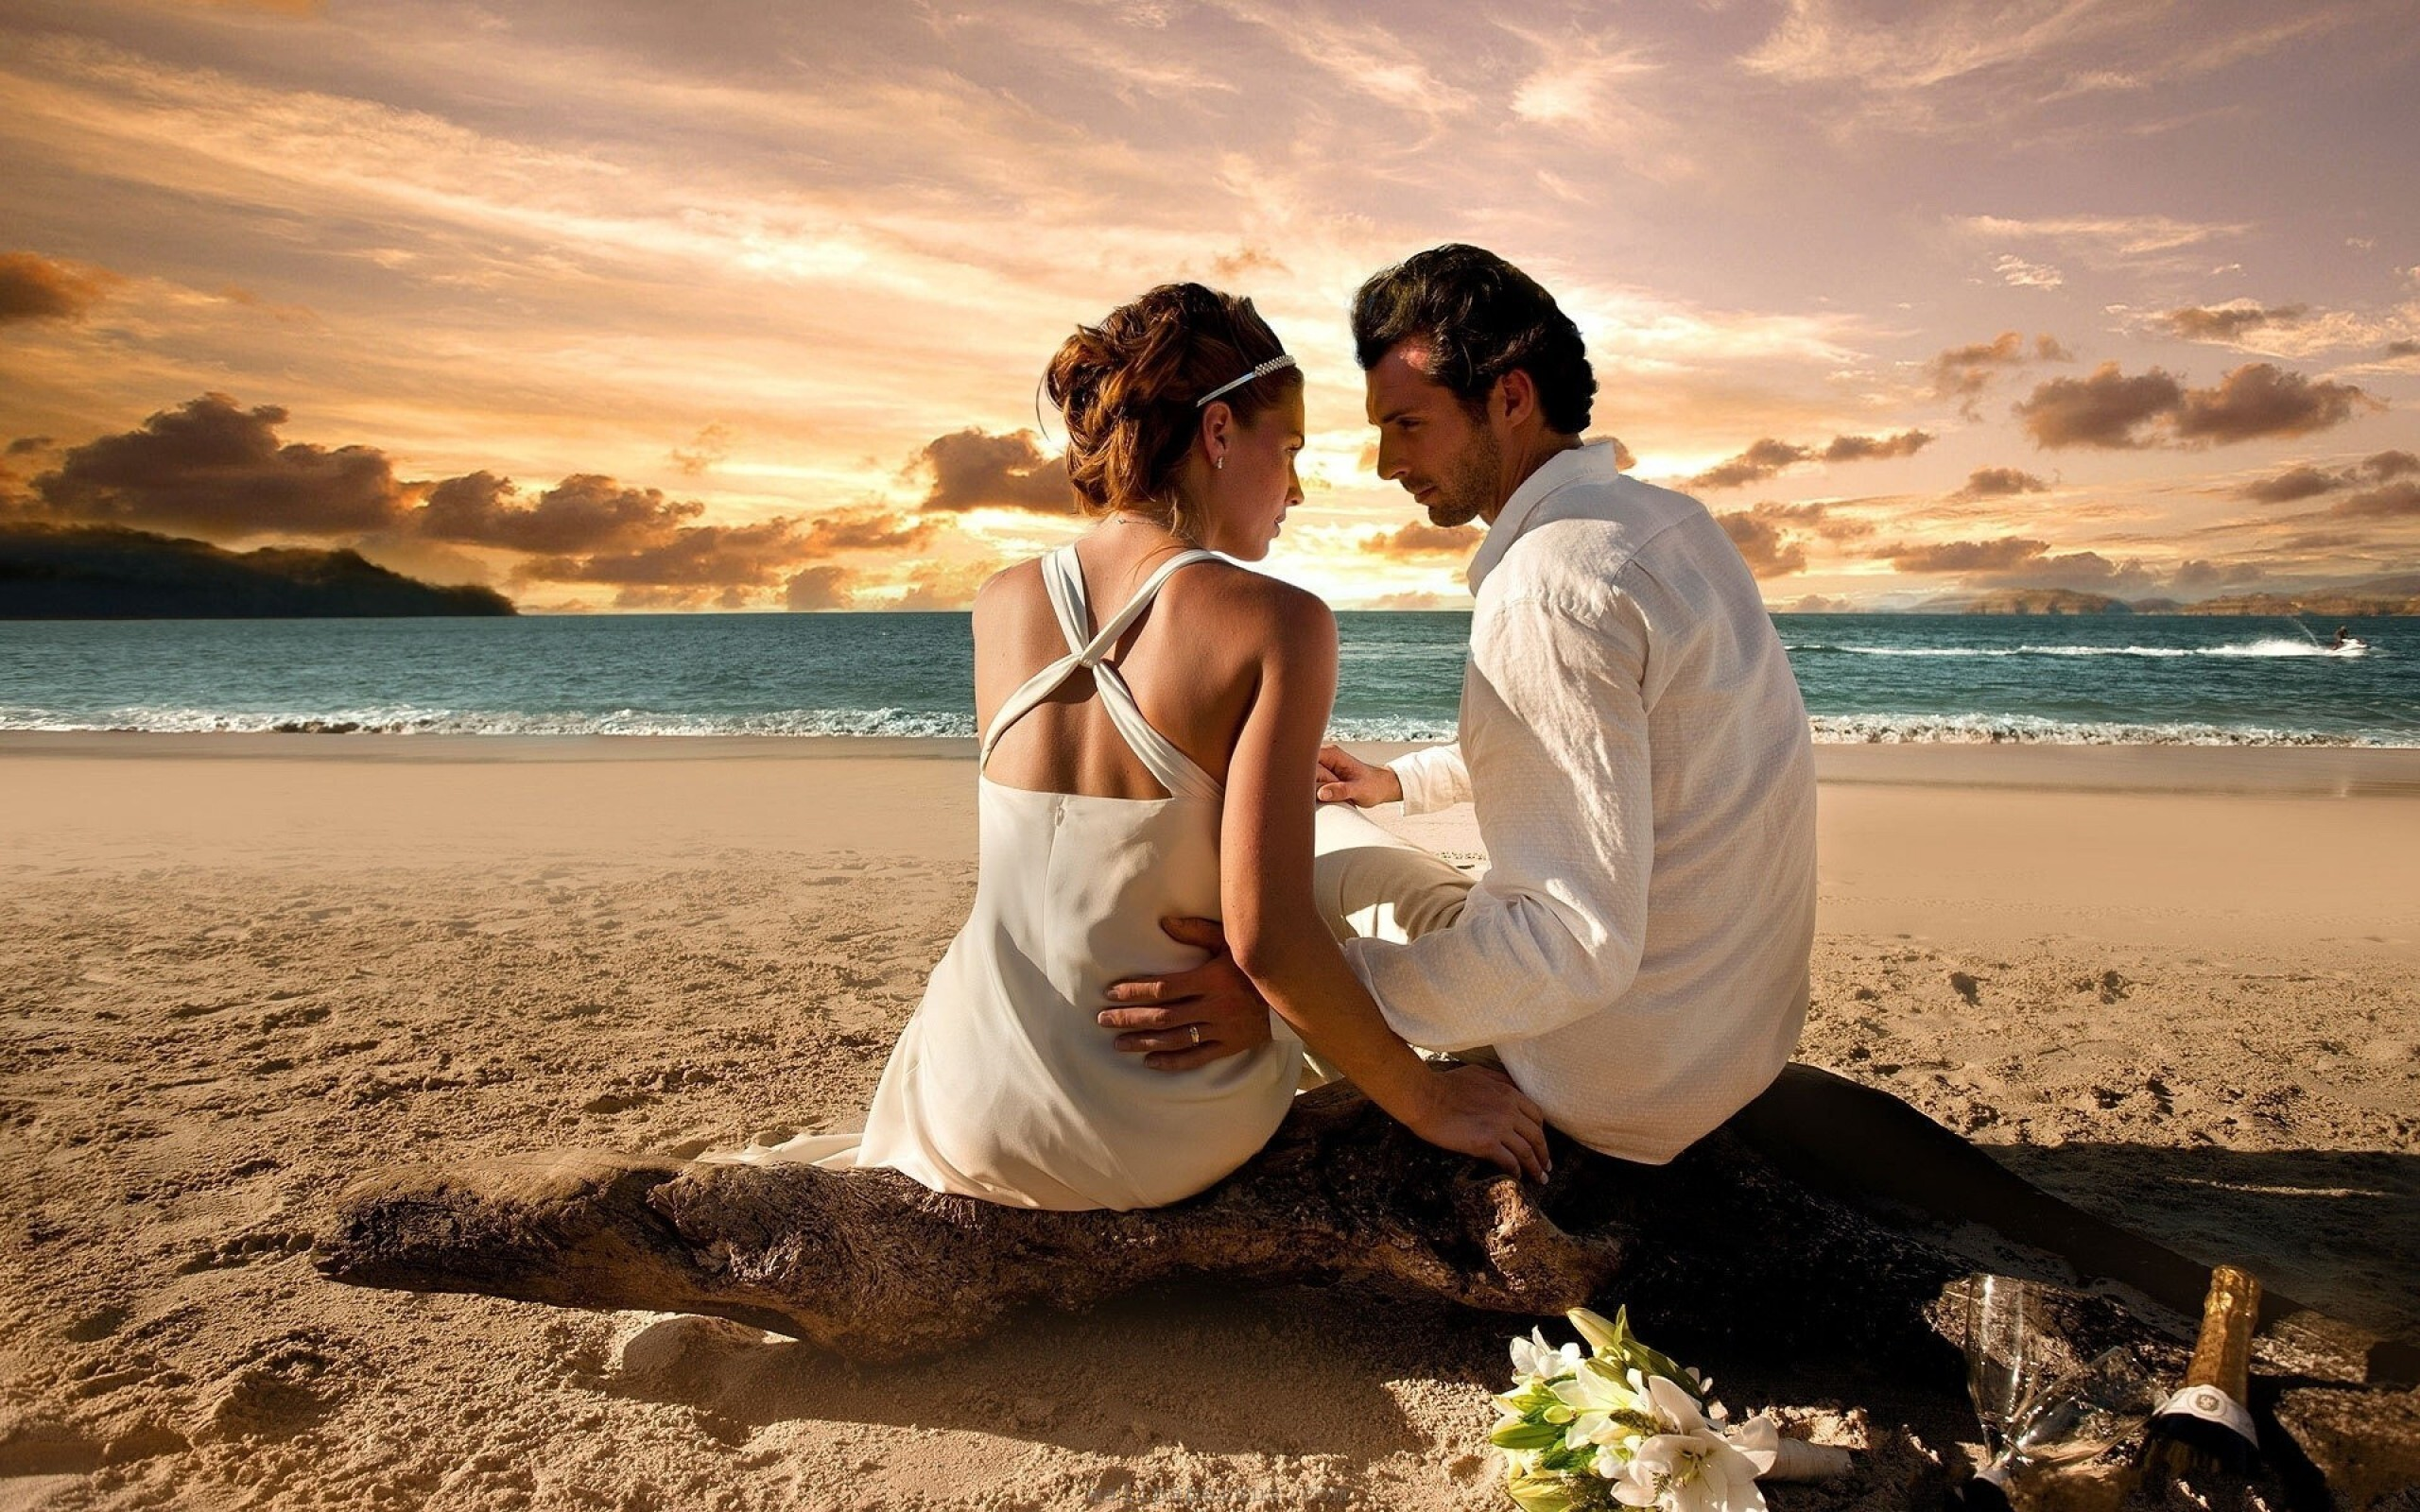 romantic couple love on beach hd desktop wallpapers | hd wallpapers